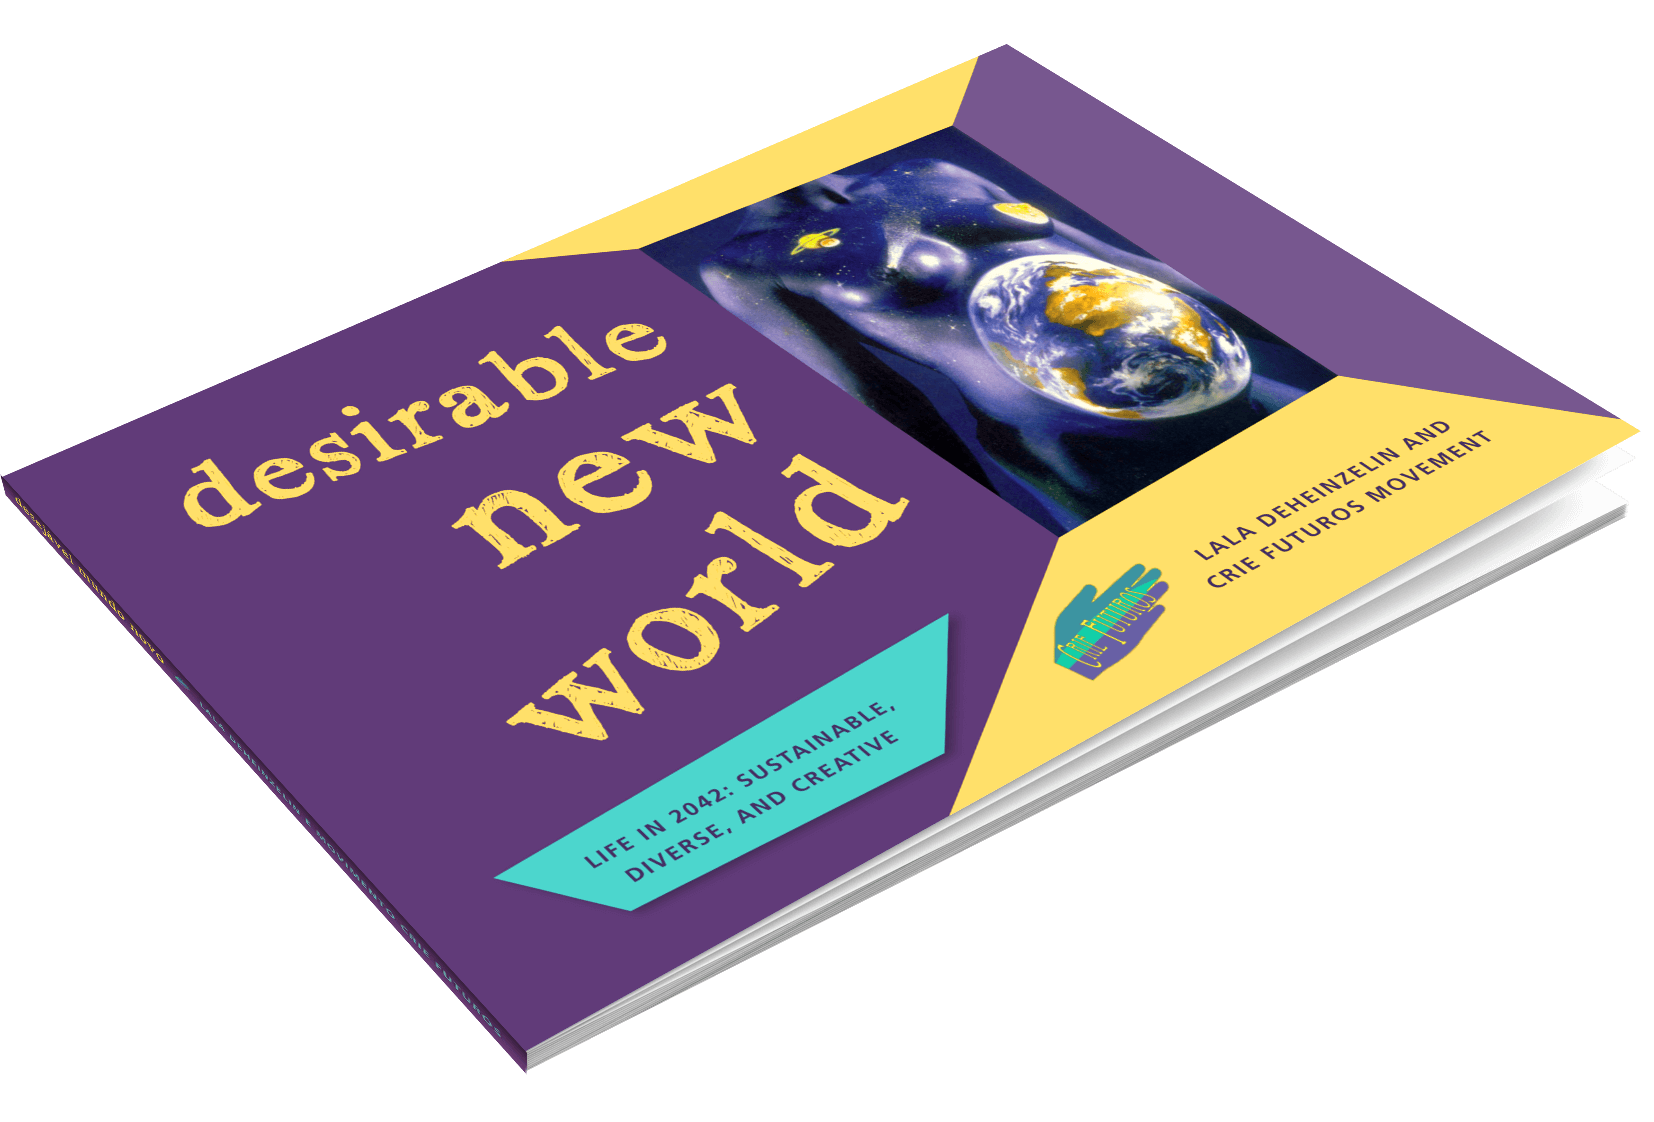 BOOK DESIRABLE NEW WORLD